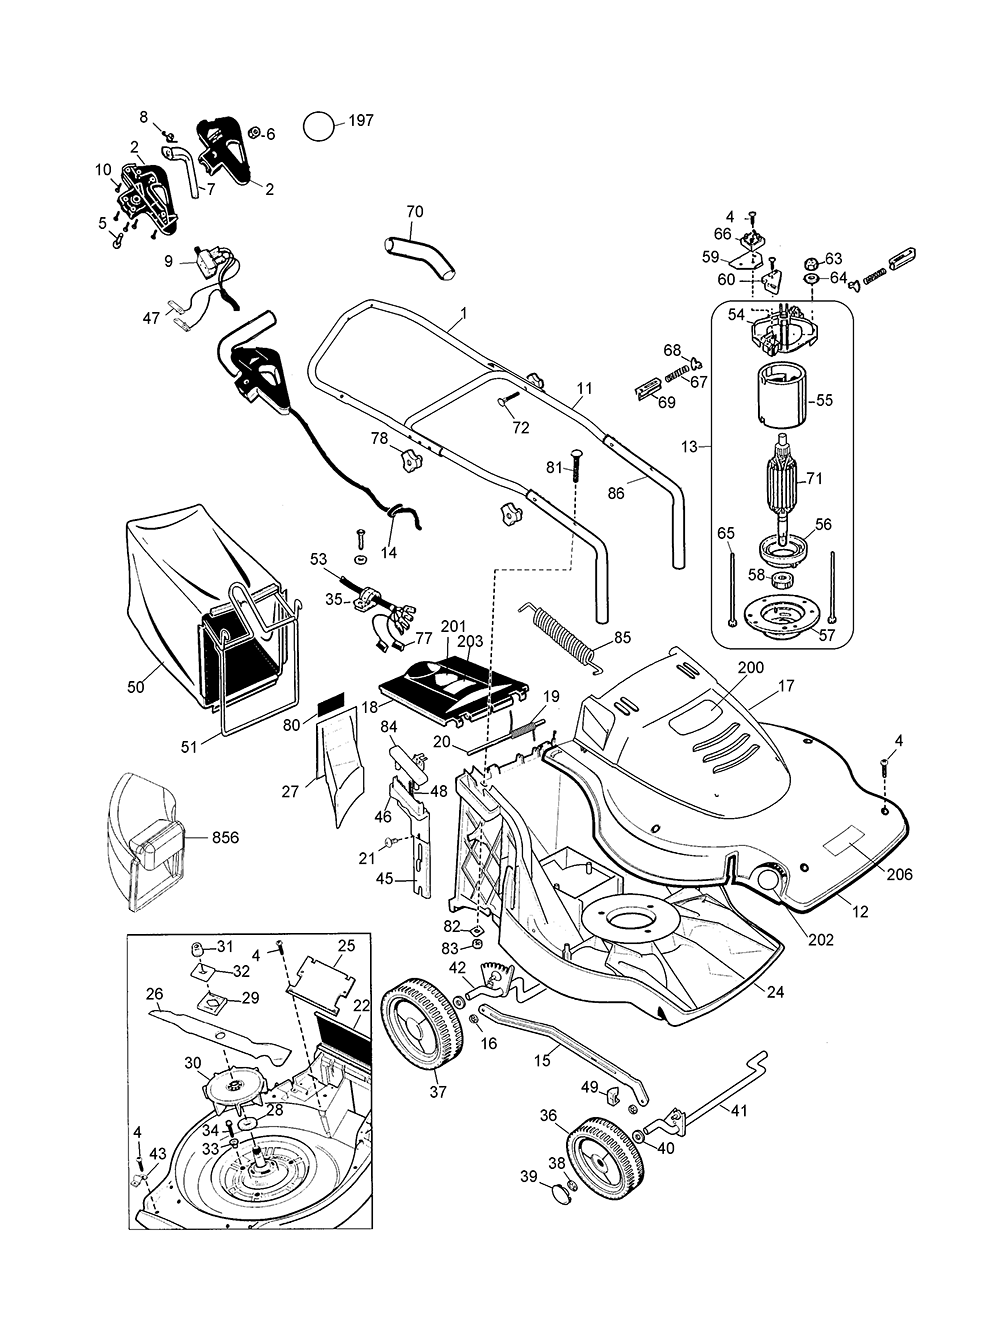 And Black Decker Mower Lawn Parts